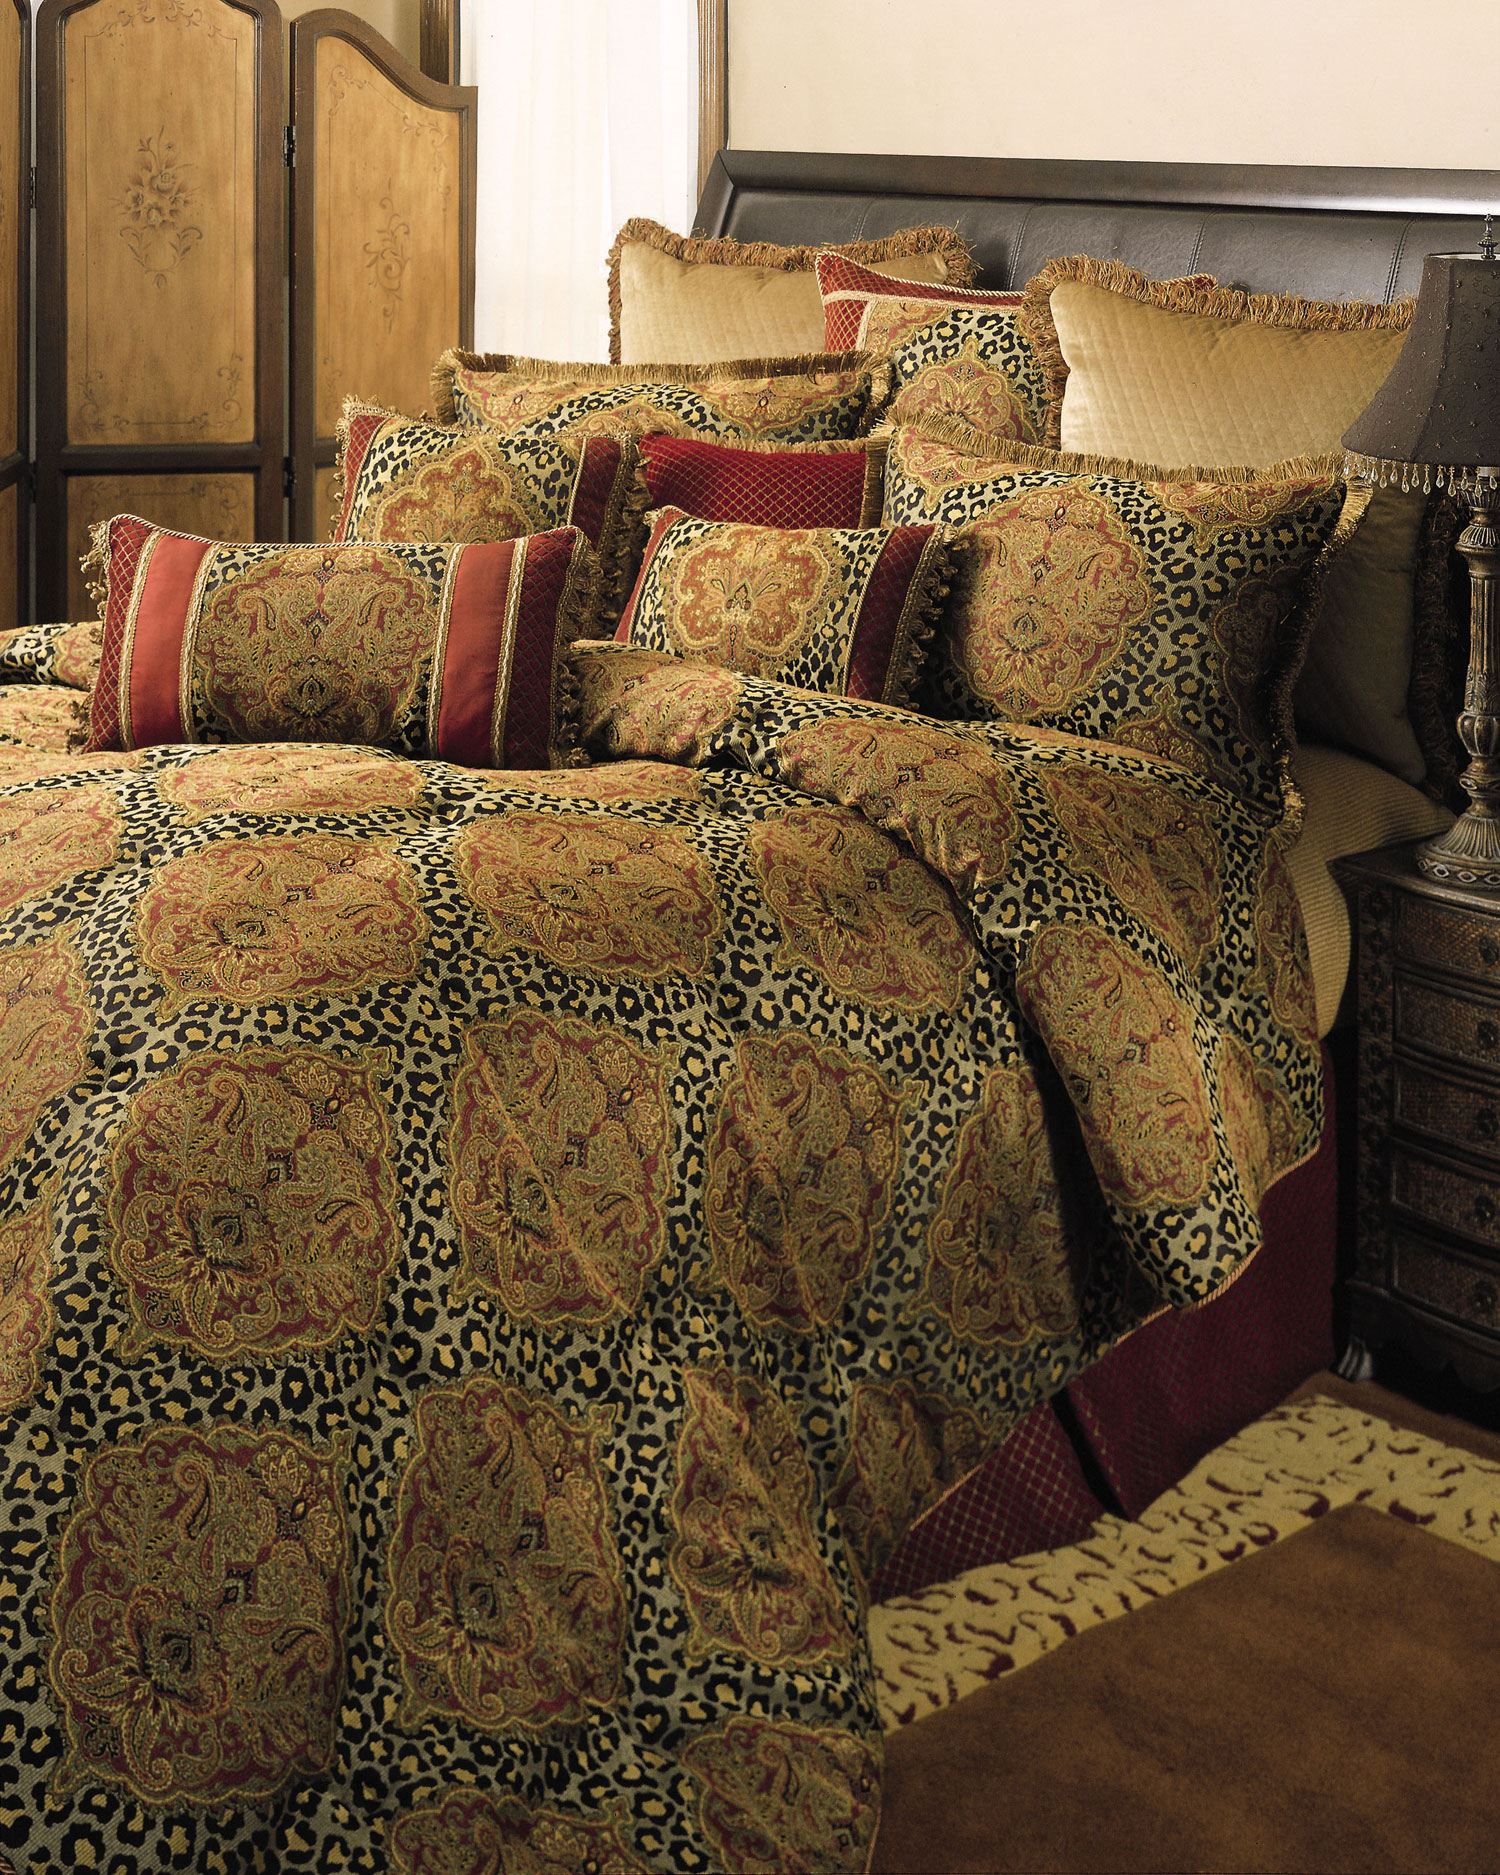 King Size Luxury Bedding Brown